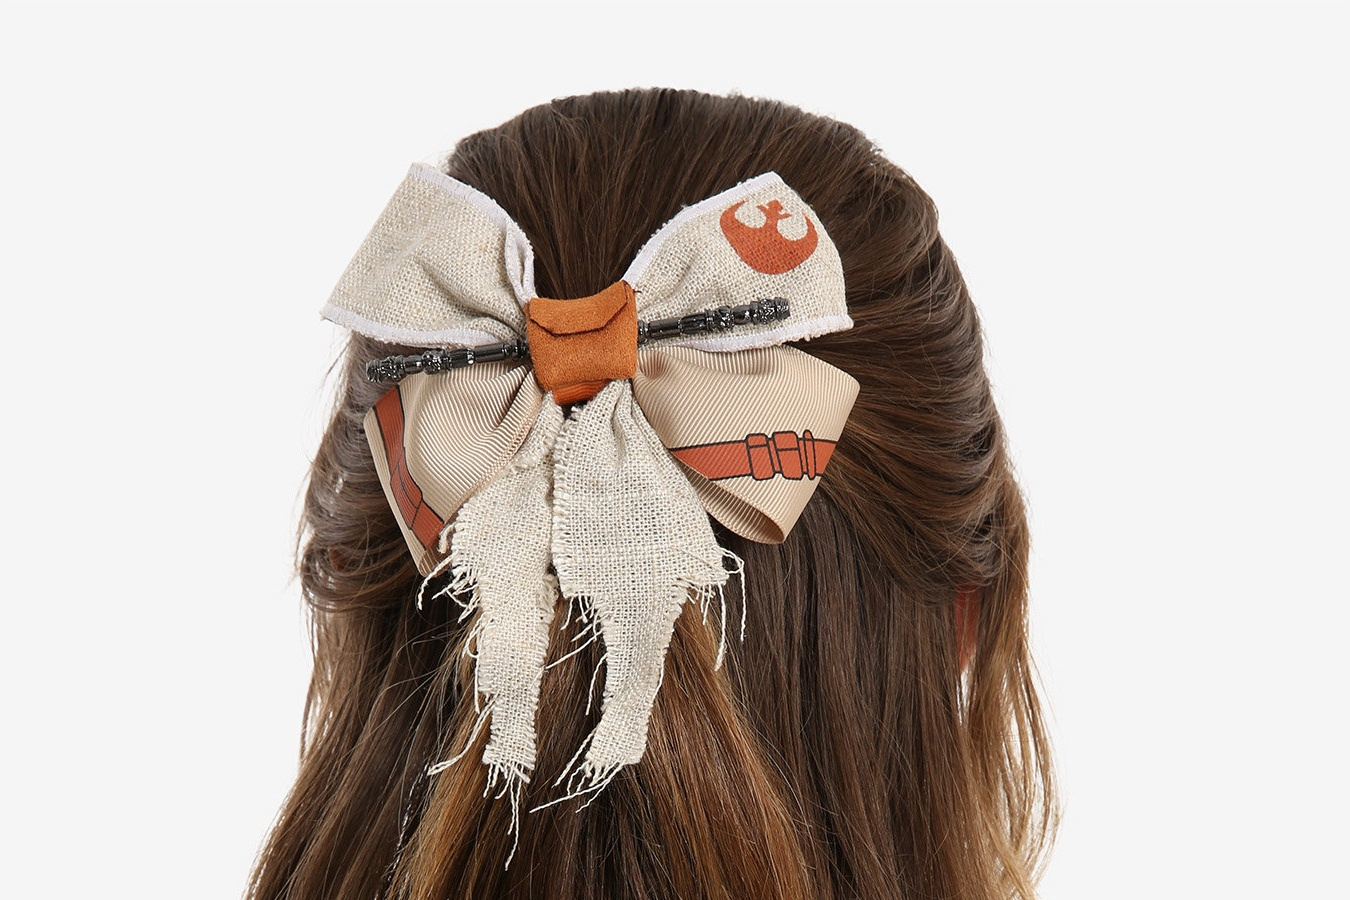 New Rey Hair Bow at Box Lunch